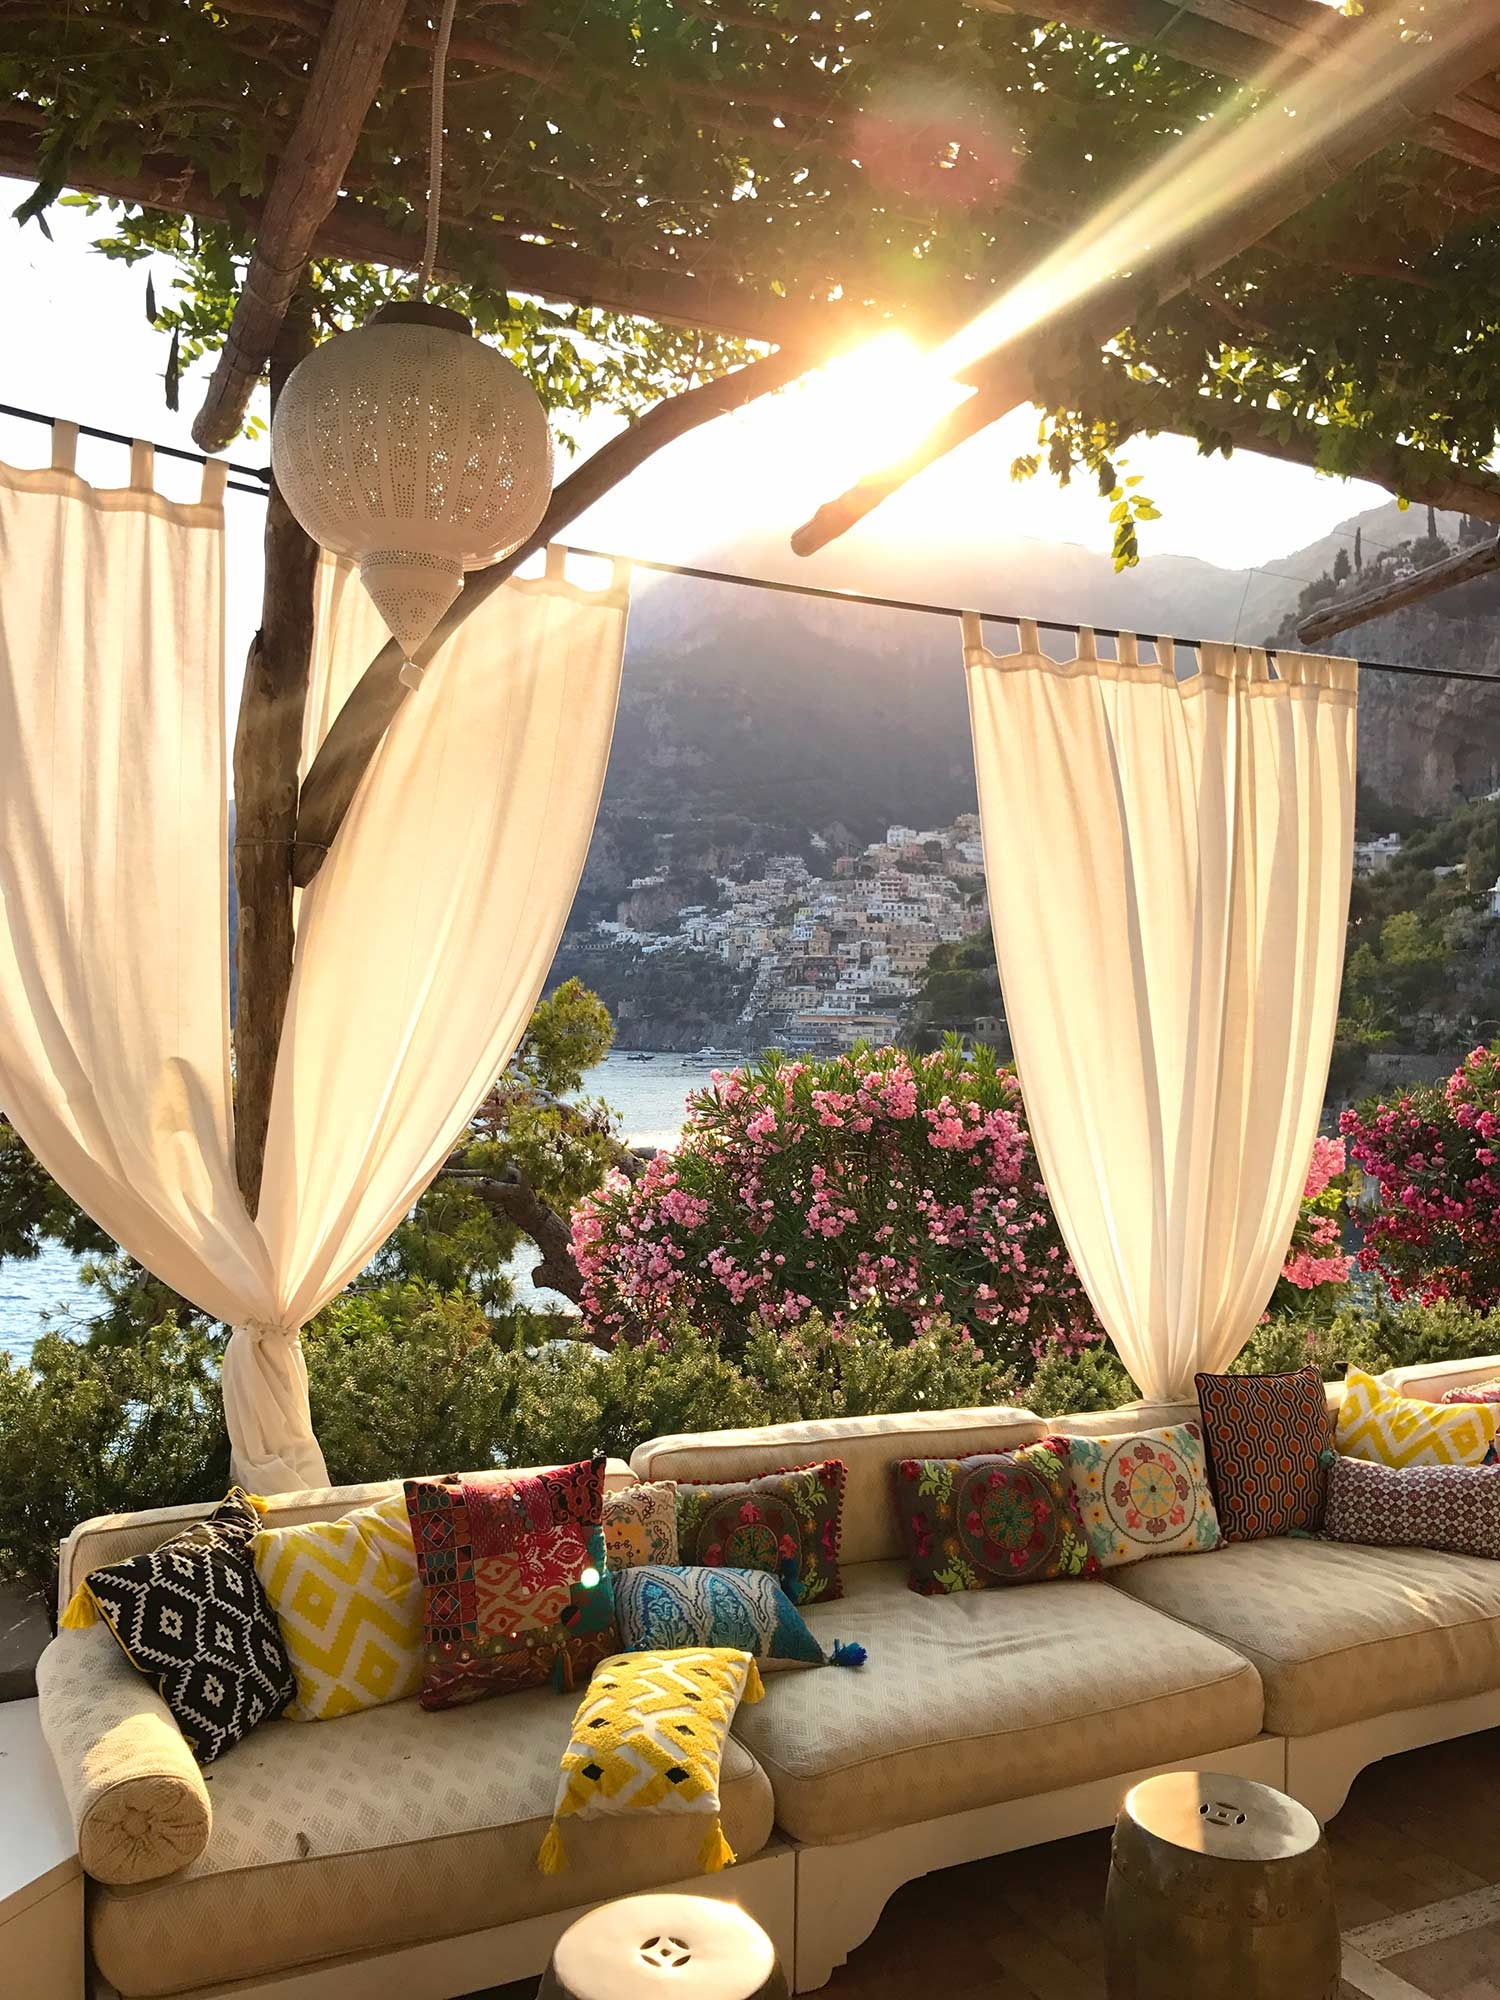 A view of the sunset over Positano from outdoor couches at Villa Tre Ville